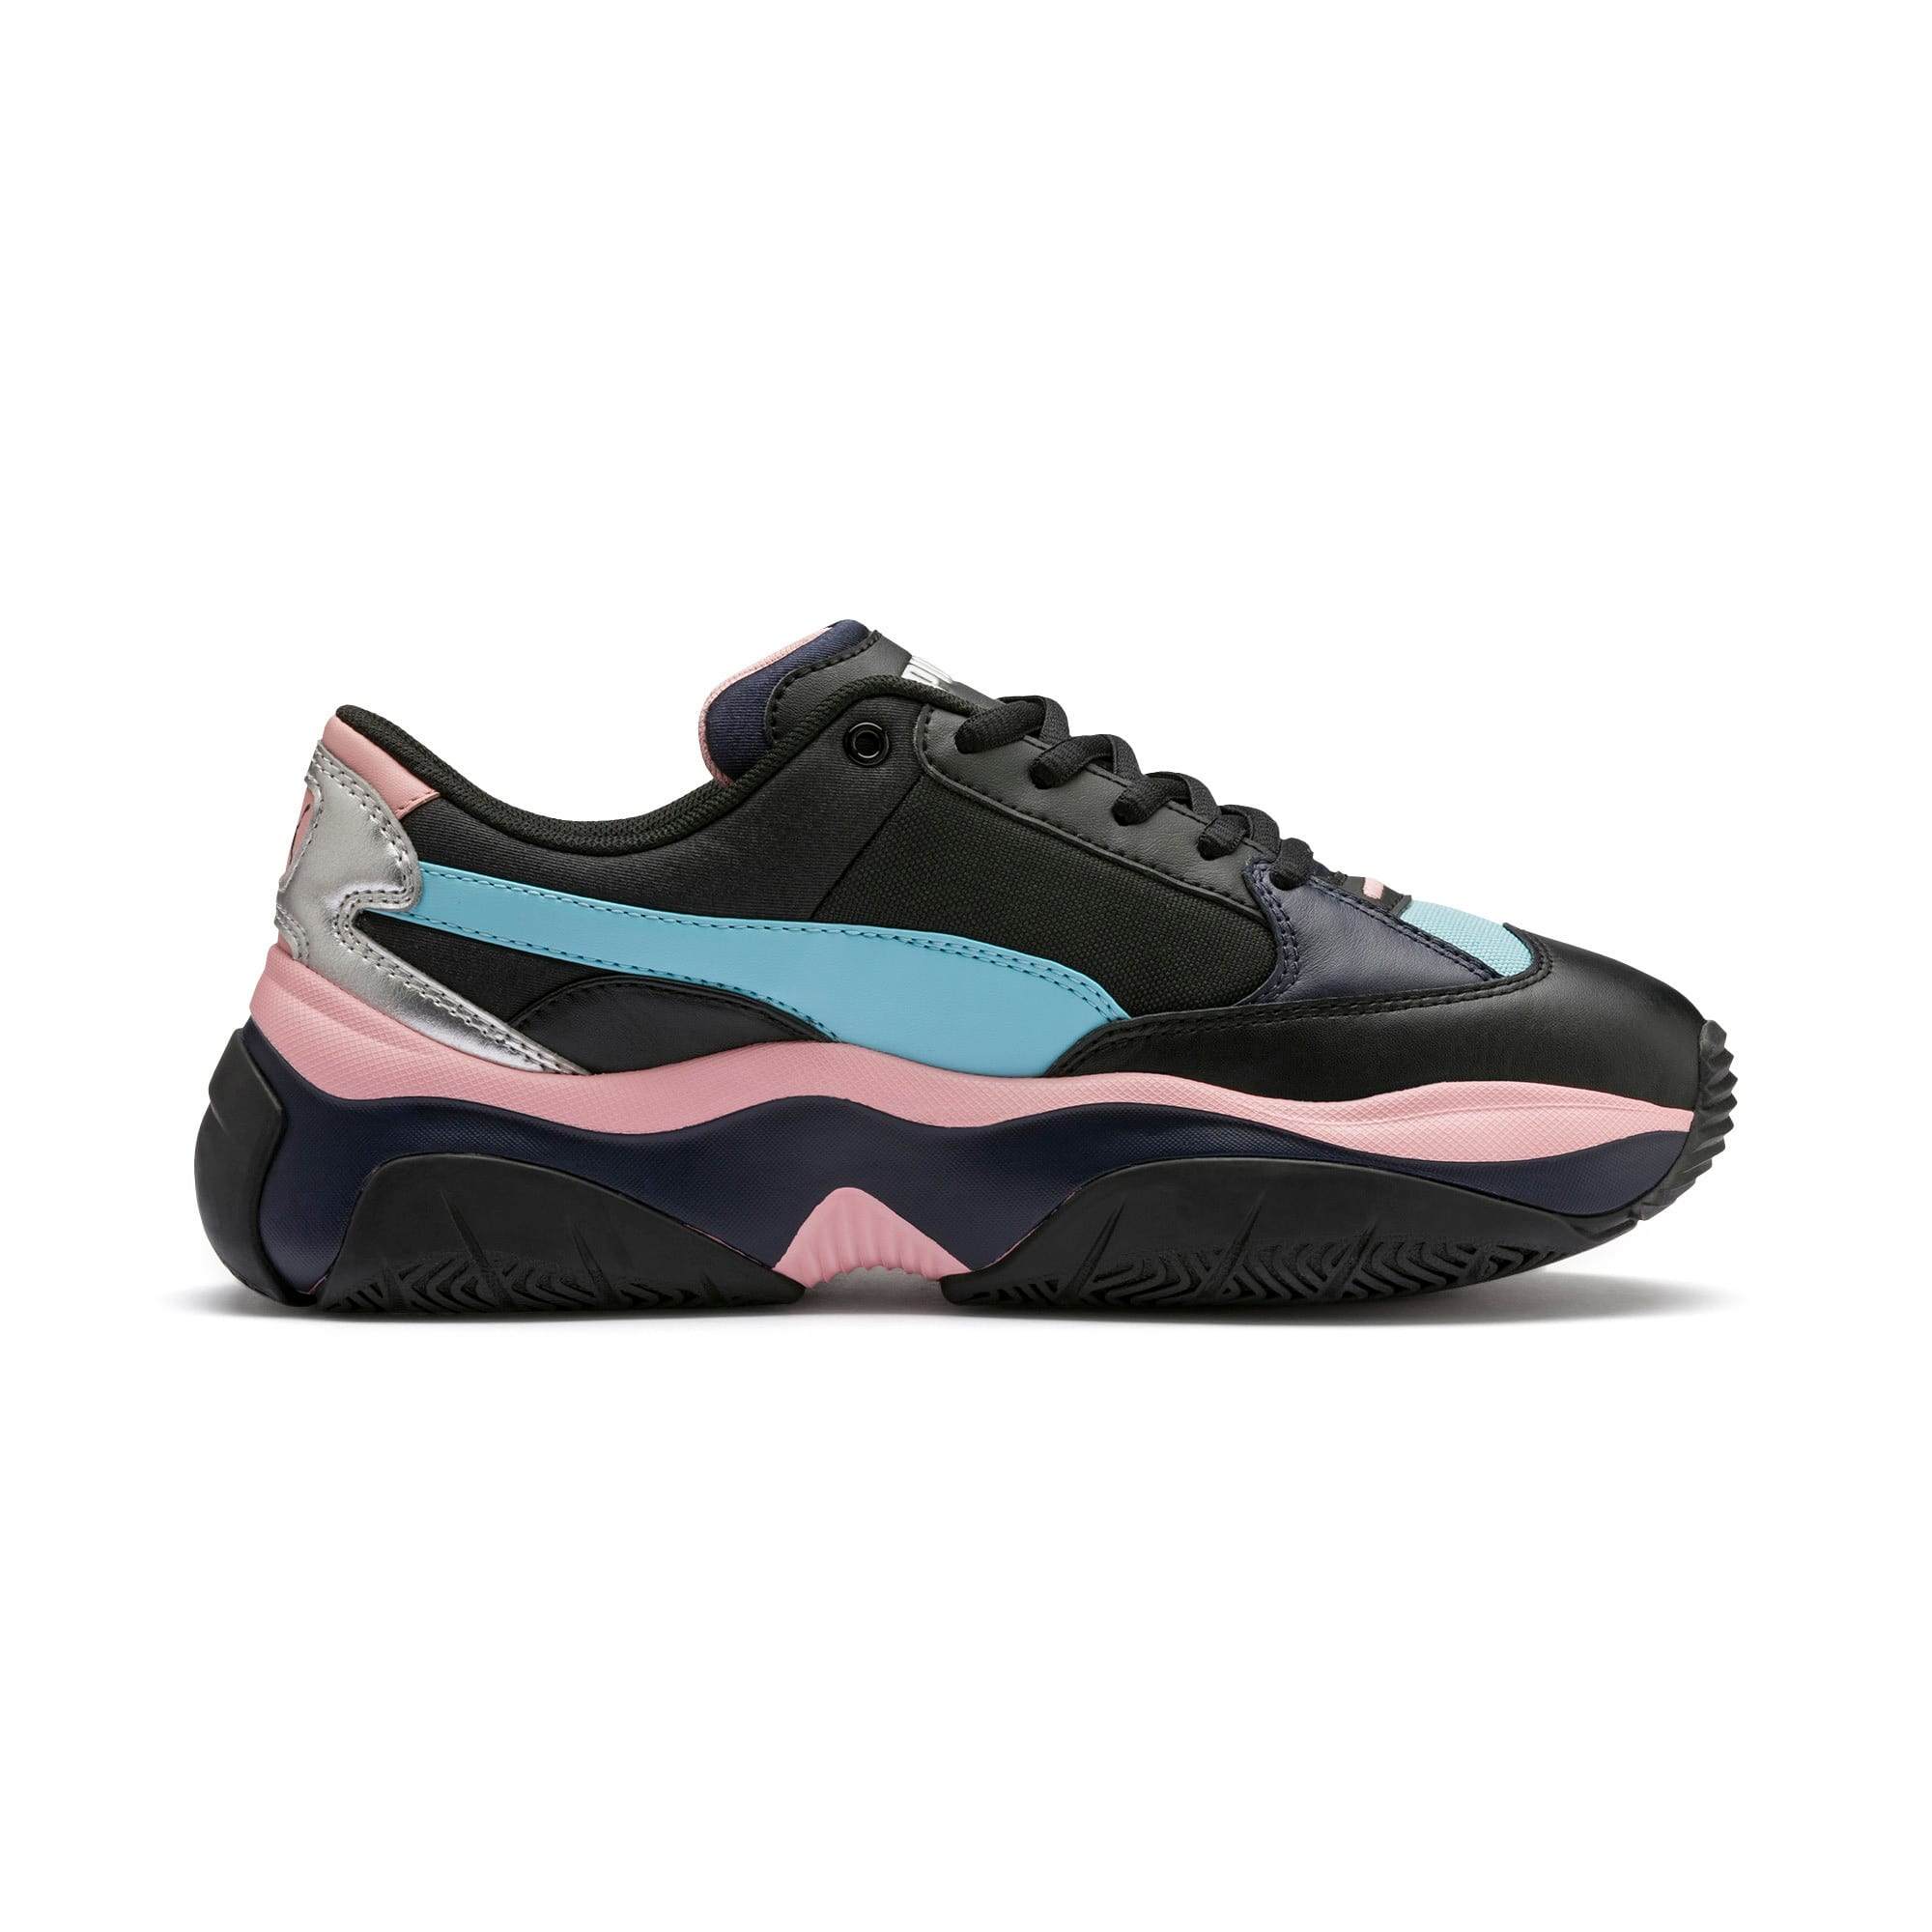 Thumbnail 6 of STORM.Y Metallic Women's Trainers, Puma Black, medium